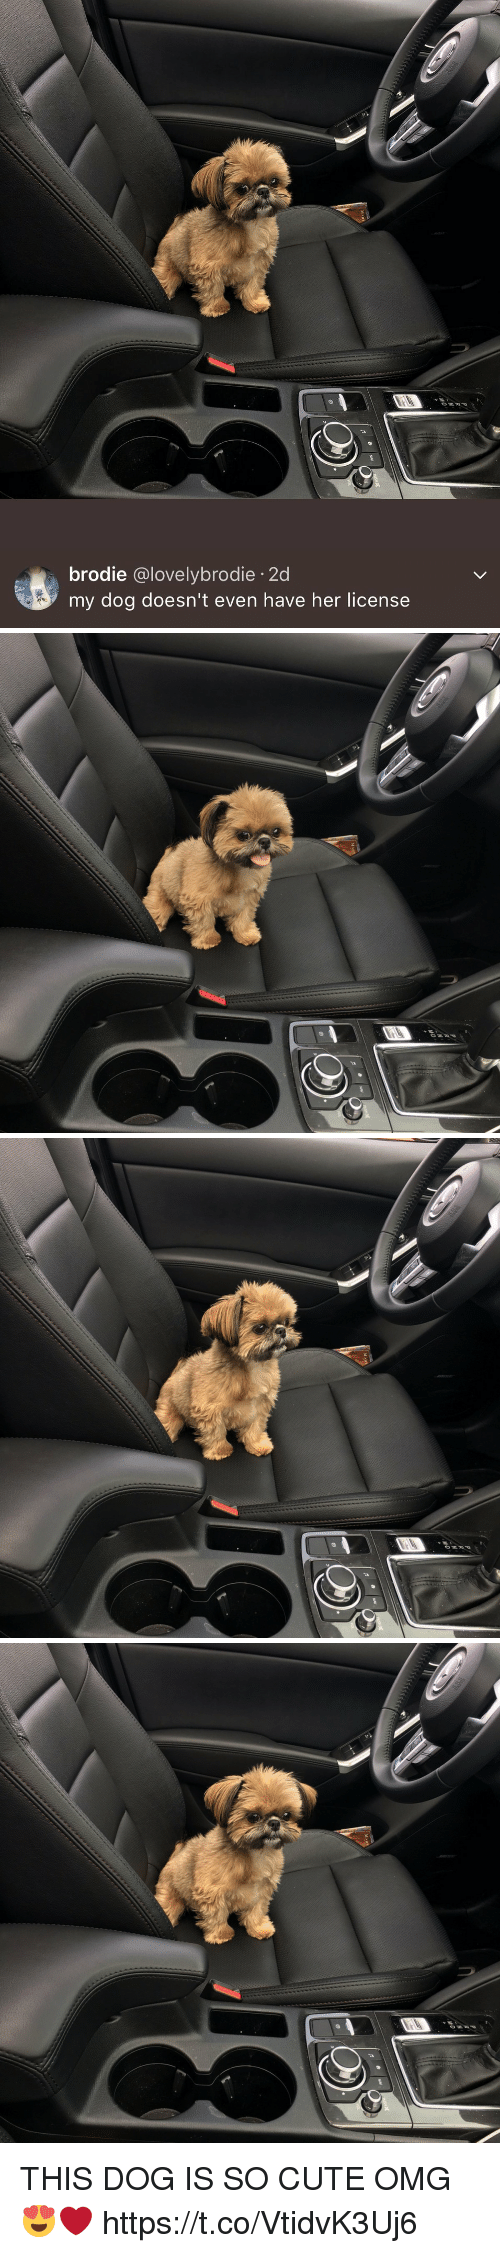 Cute, Omg, and Girl Memes: brodie  @lovely brodie 2d  my dog doesn't even have her license   MD   MD   M-D THIS DOG IS SO CUTE OMG 😍❤️ https://t.co/VtidvK3Uj6